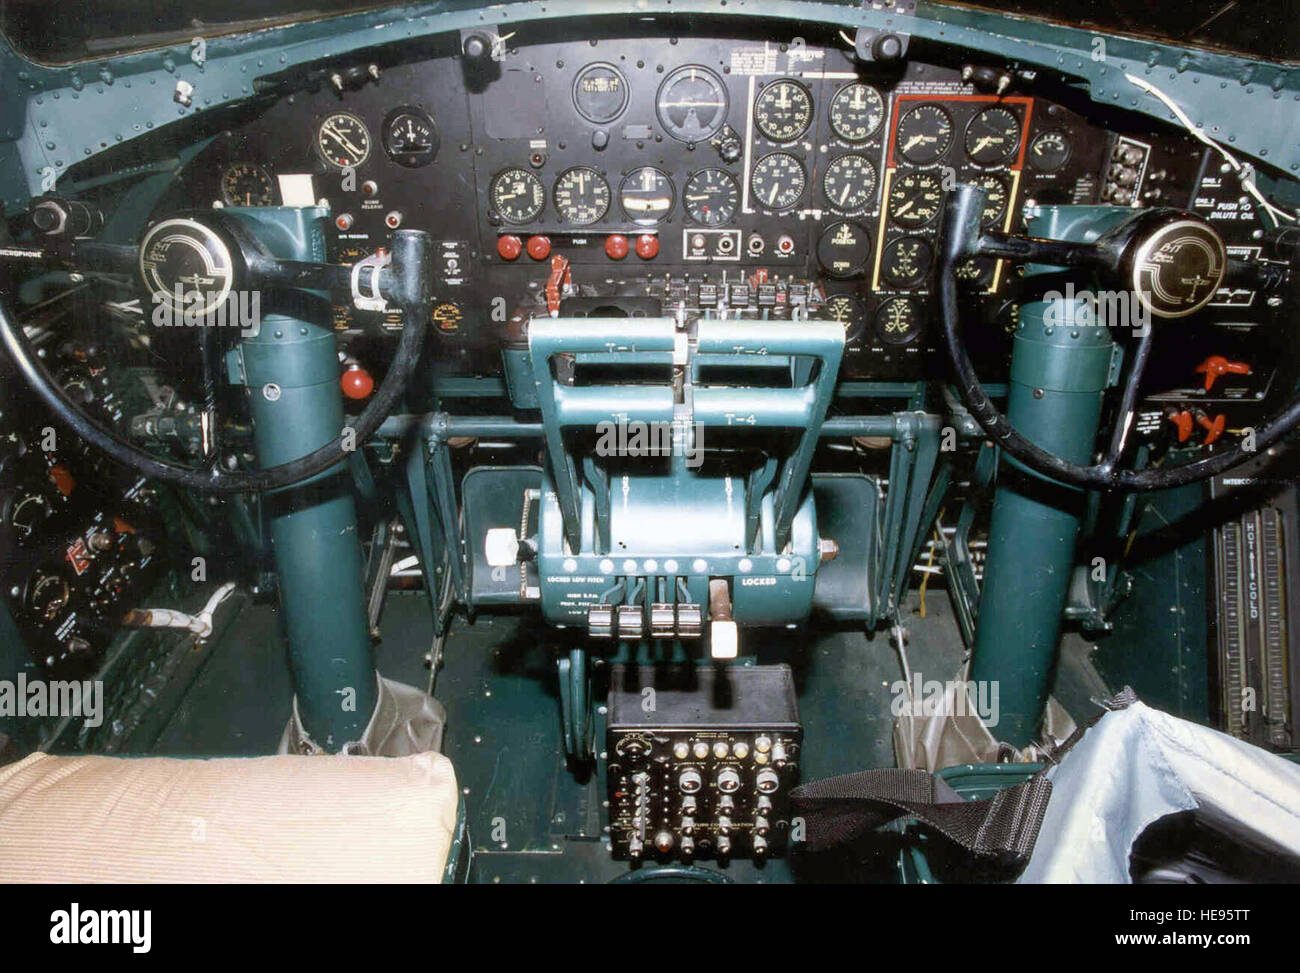 DAYTON, Ohio - Boeing B-17G Flying Fortress cockpit at the National Museum of the U.S. Air Force. (U.S. Air Force Stock Photo